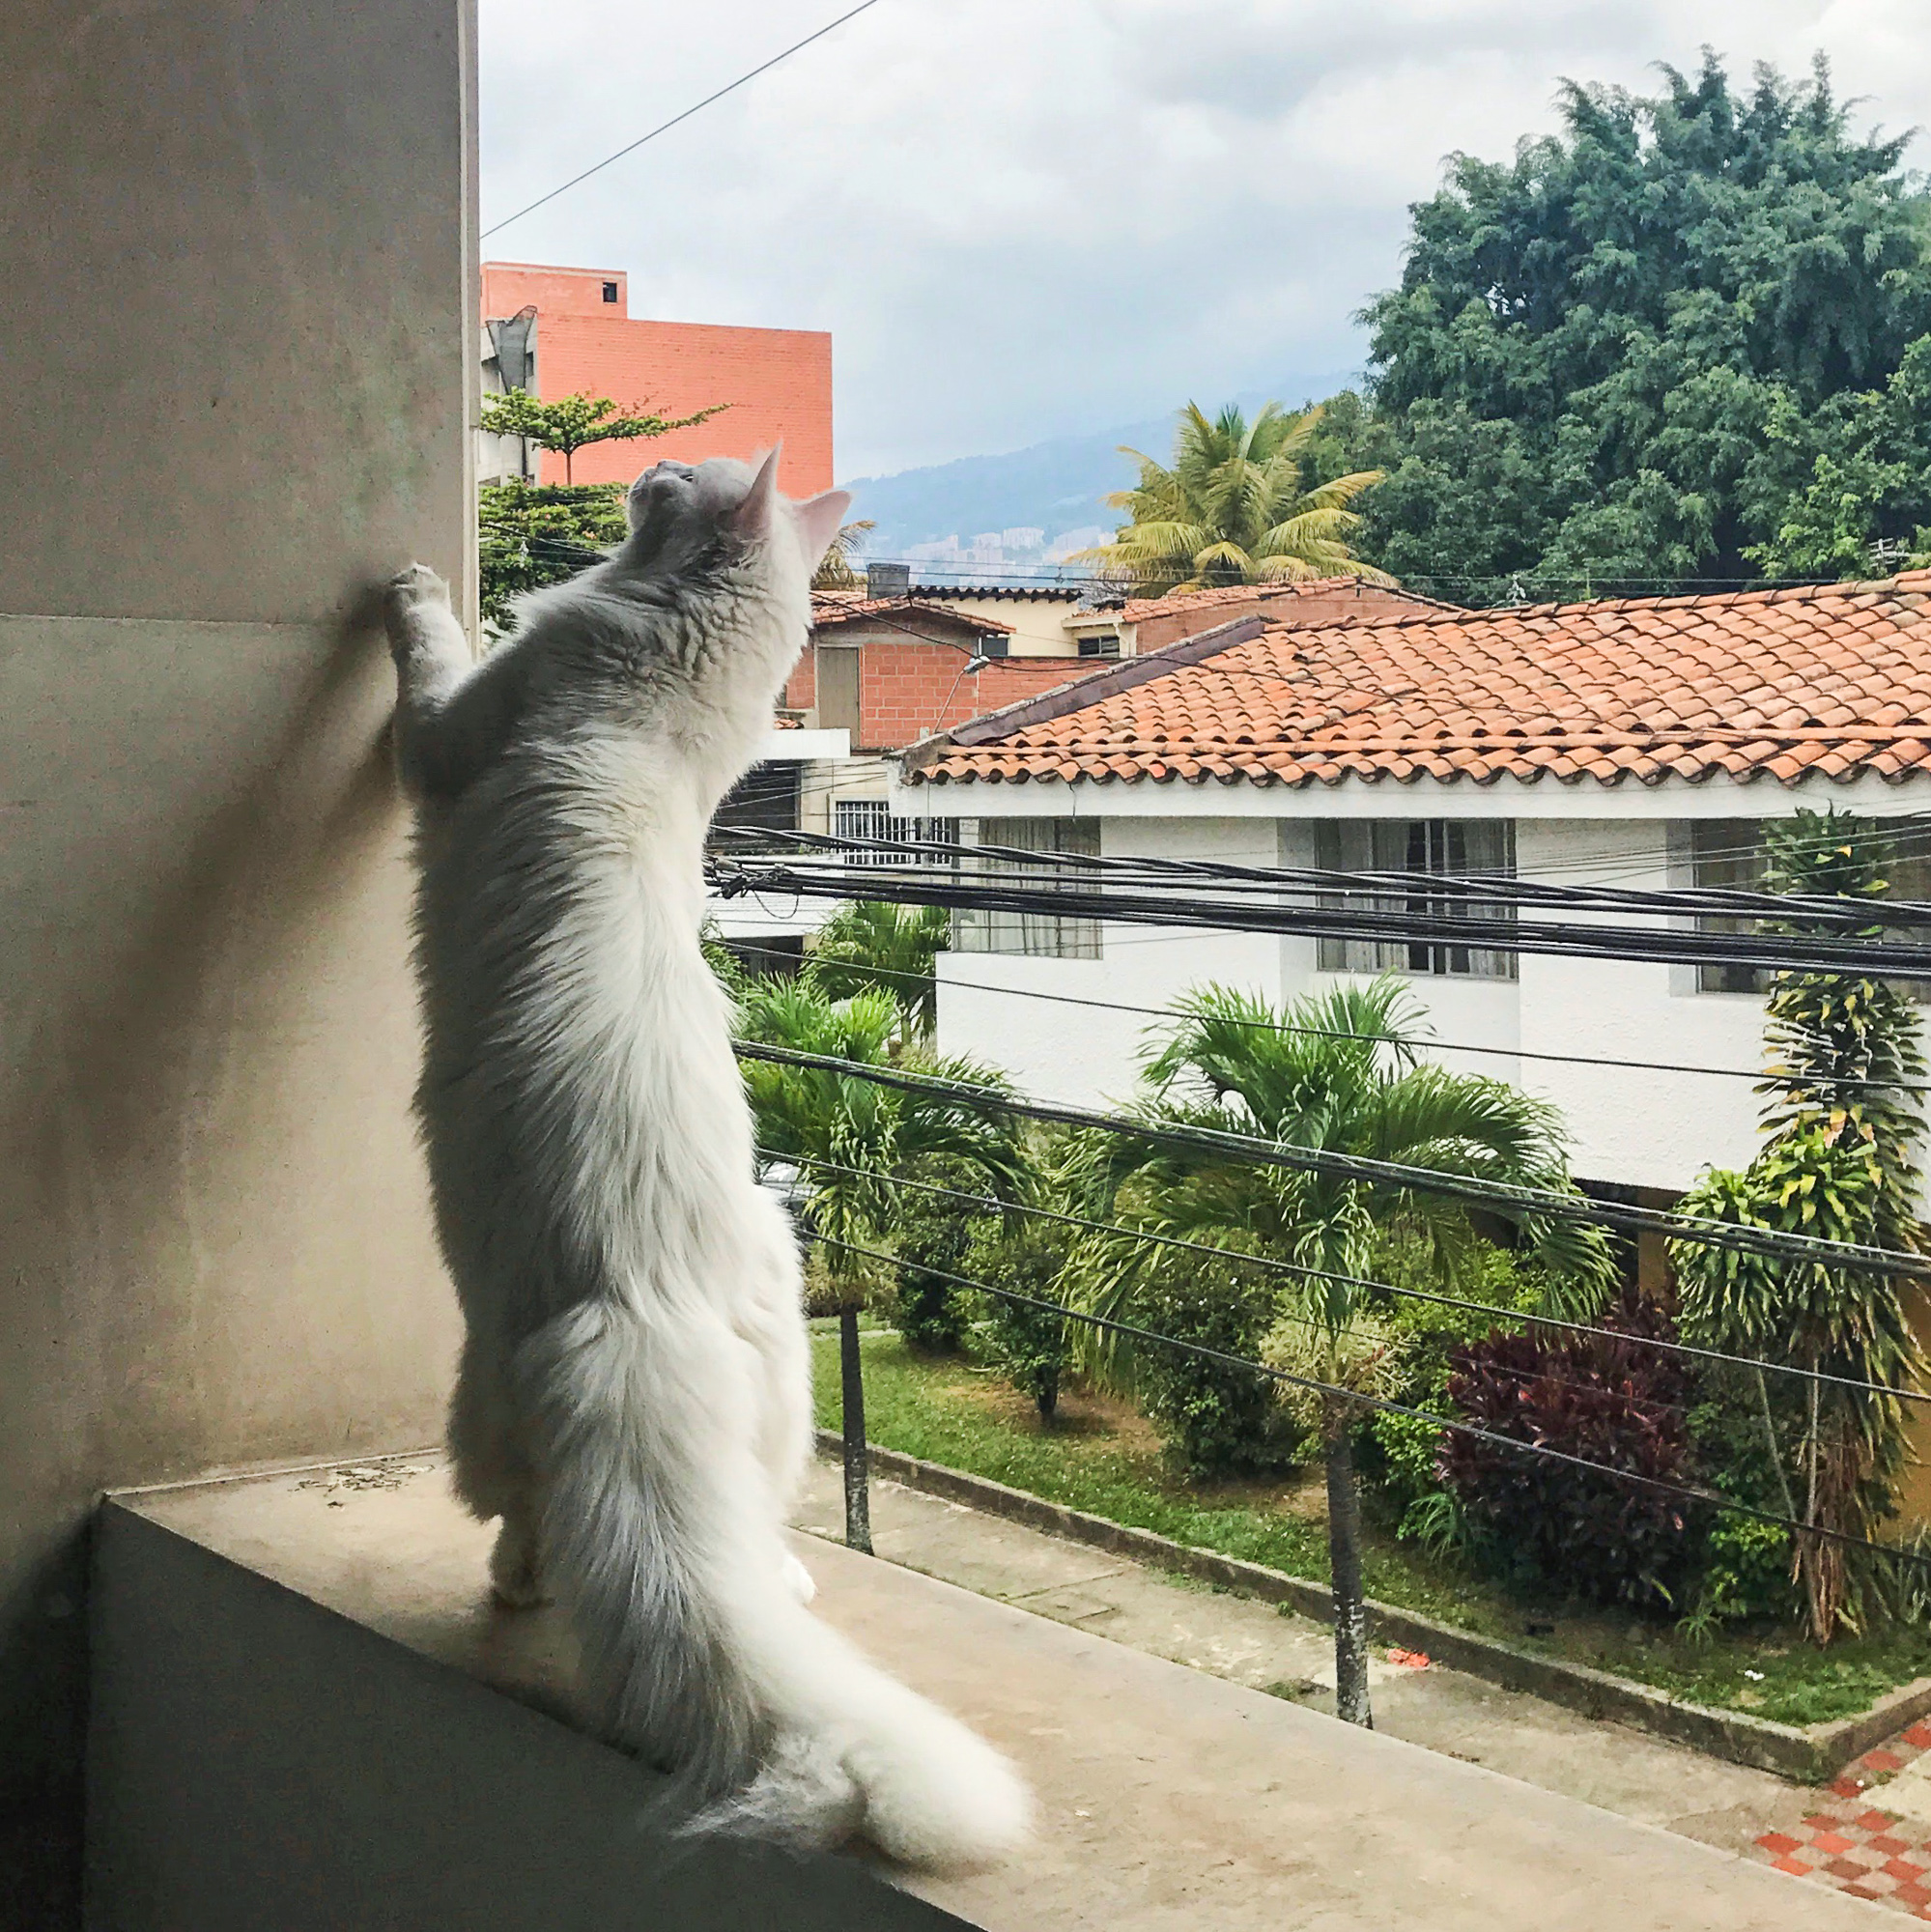 Cezar stretches out in Medellin, Colombia. (Photo: Instagram/@cezars.crew)